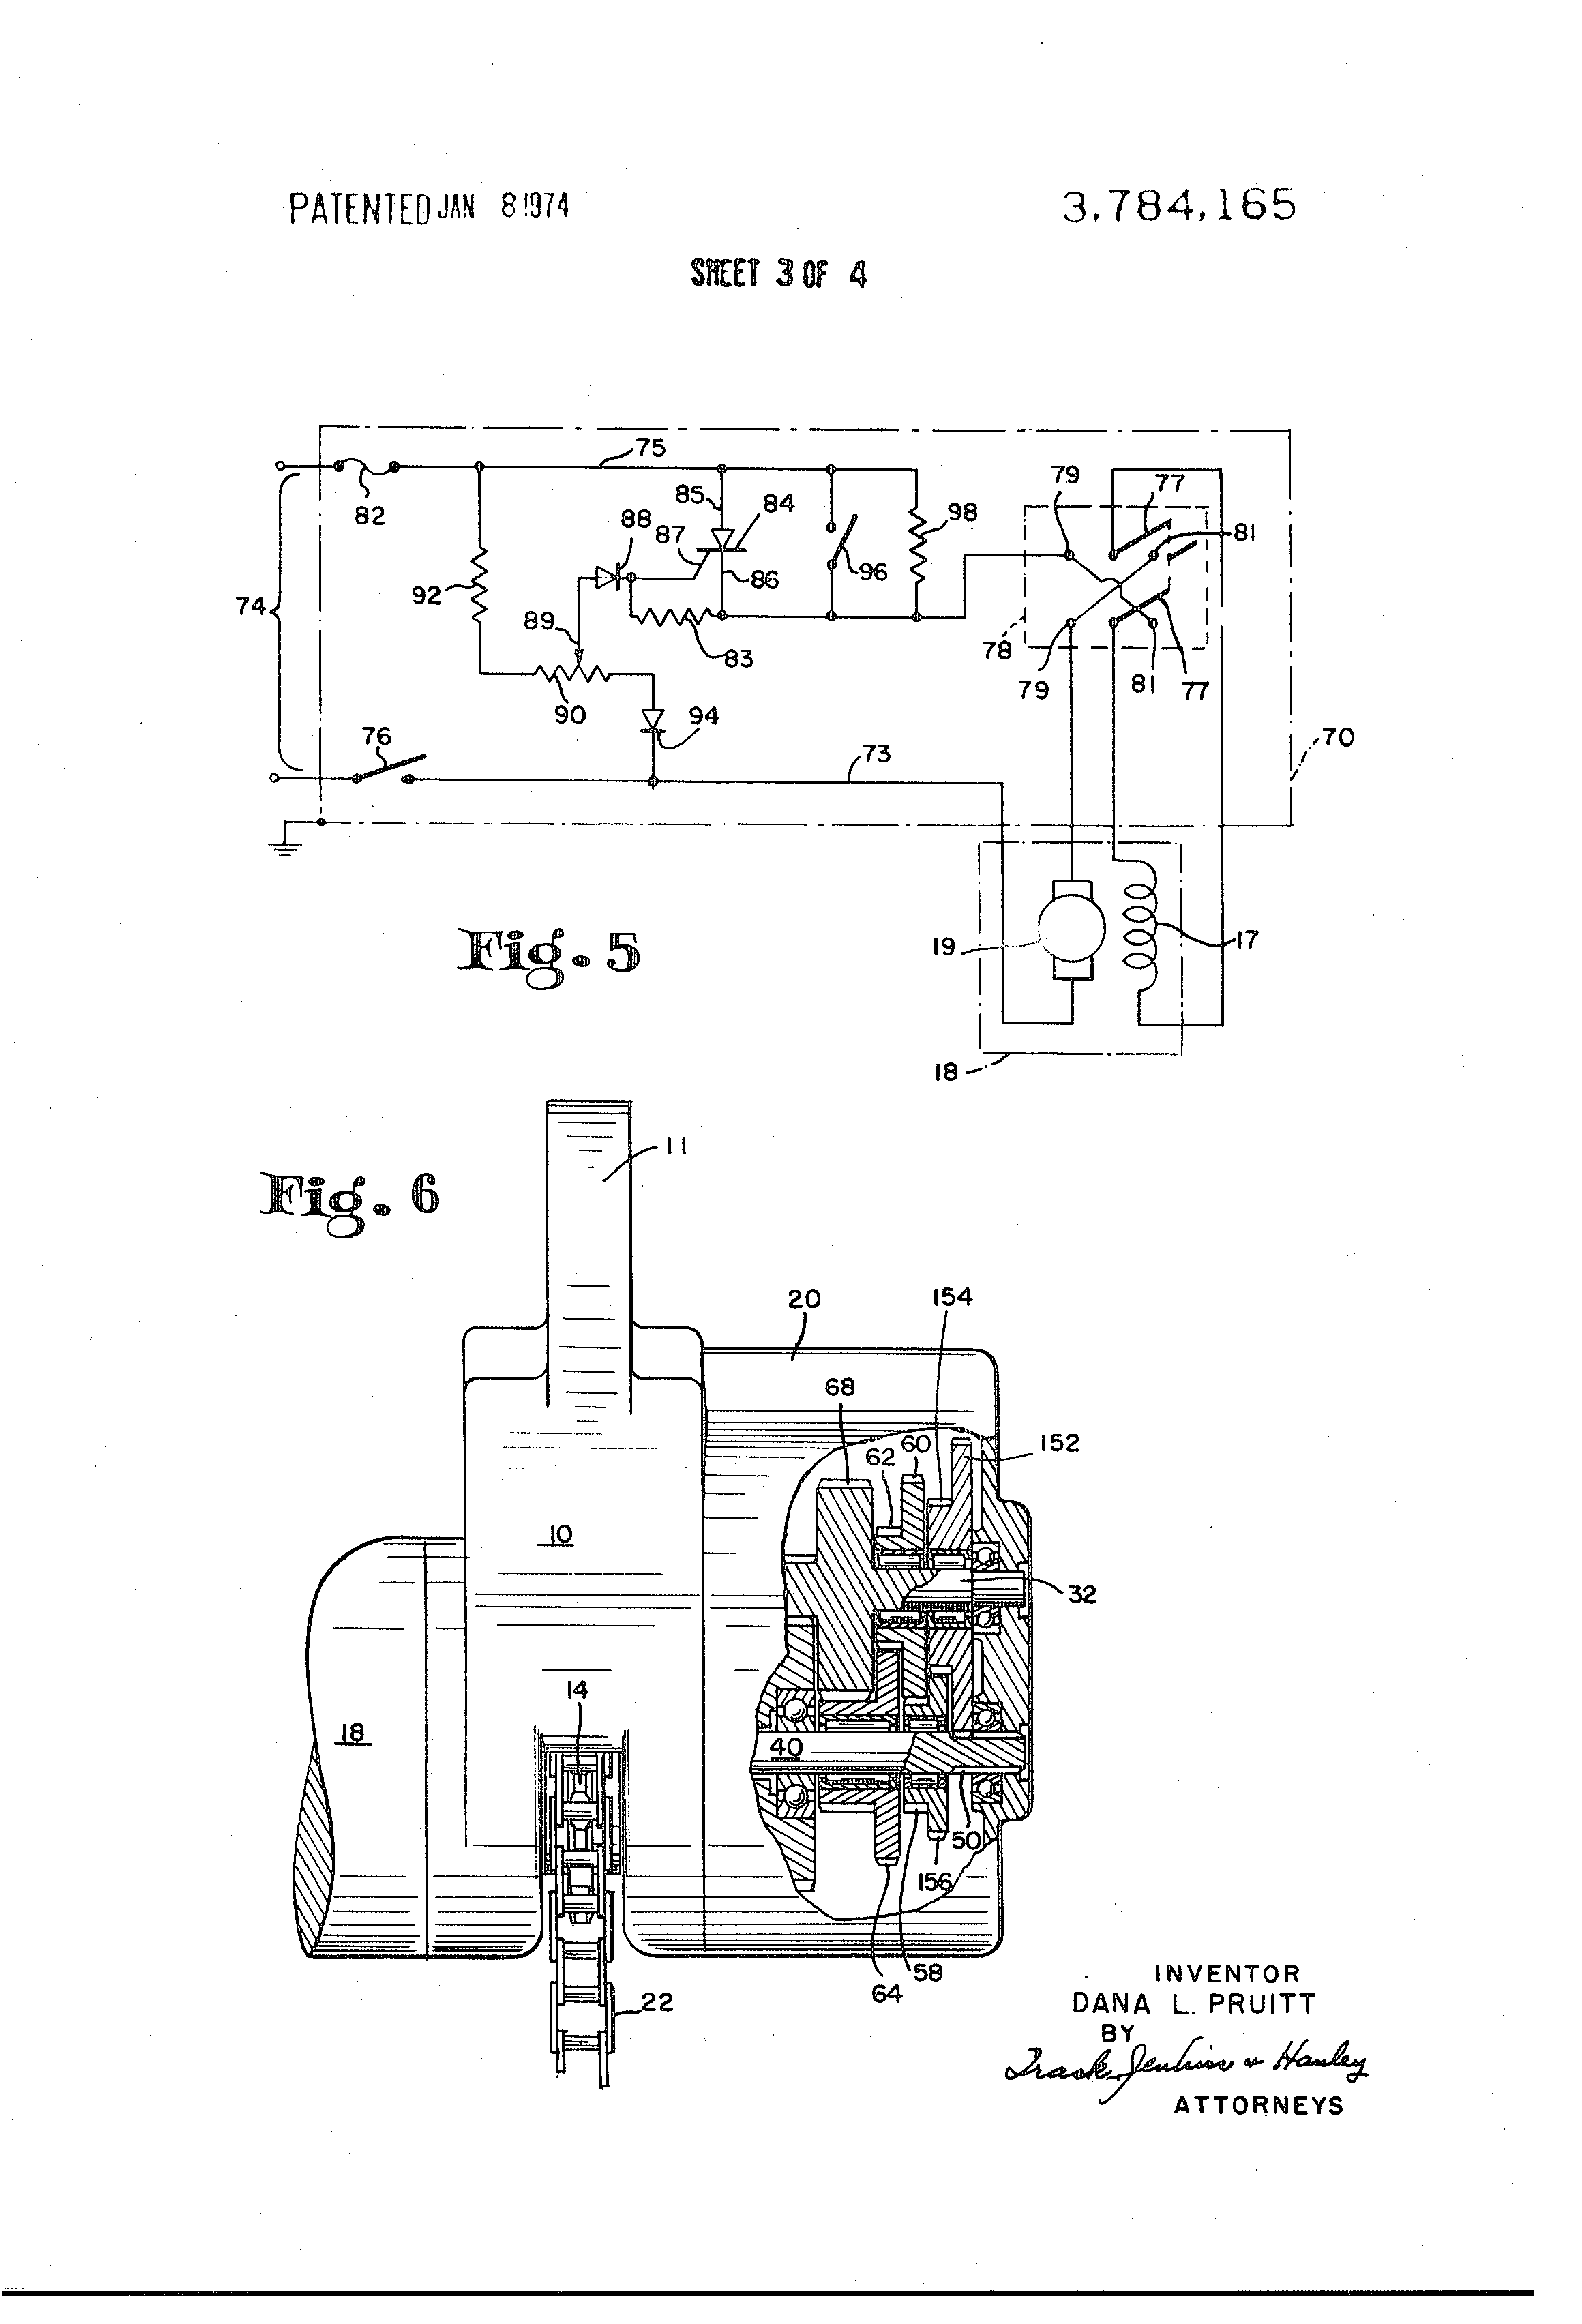 Lionel 165 Magnetic Crane Wiring Diagram 40 Images Motor Us3784165 3 Patent Variable Speed Hoist Google Patents At Cita